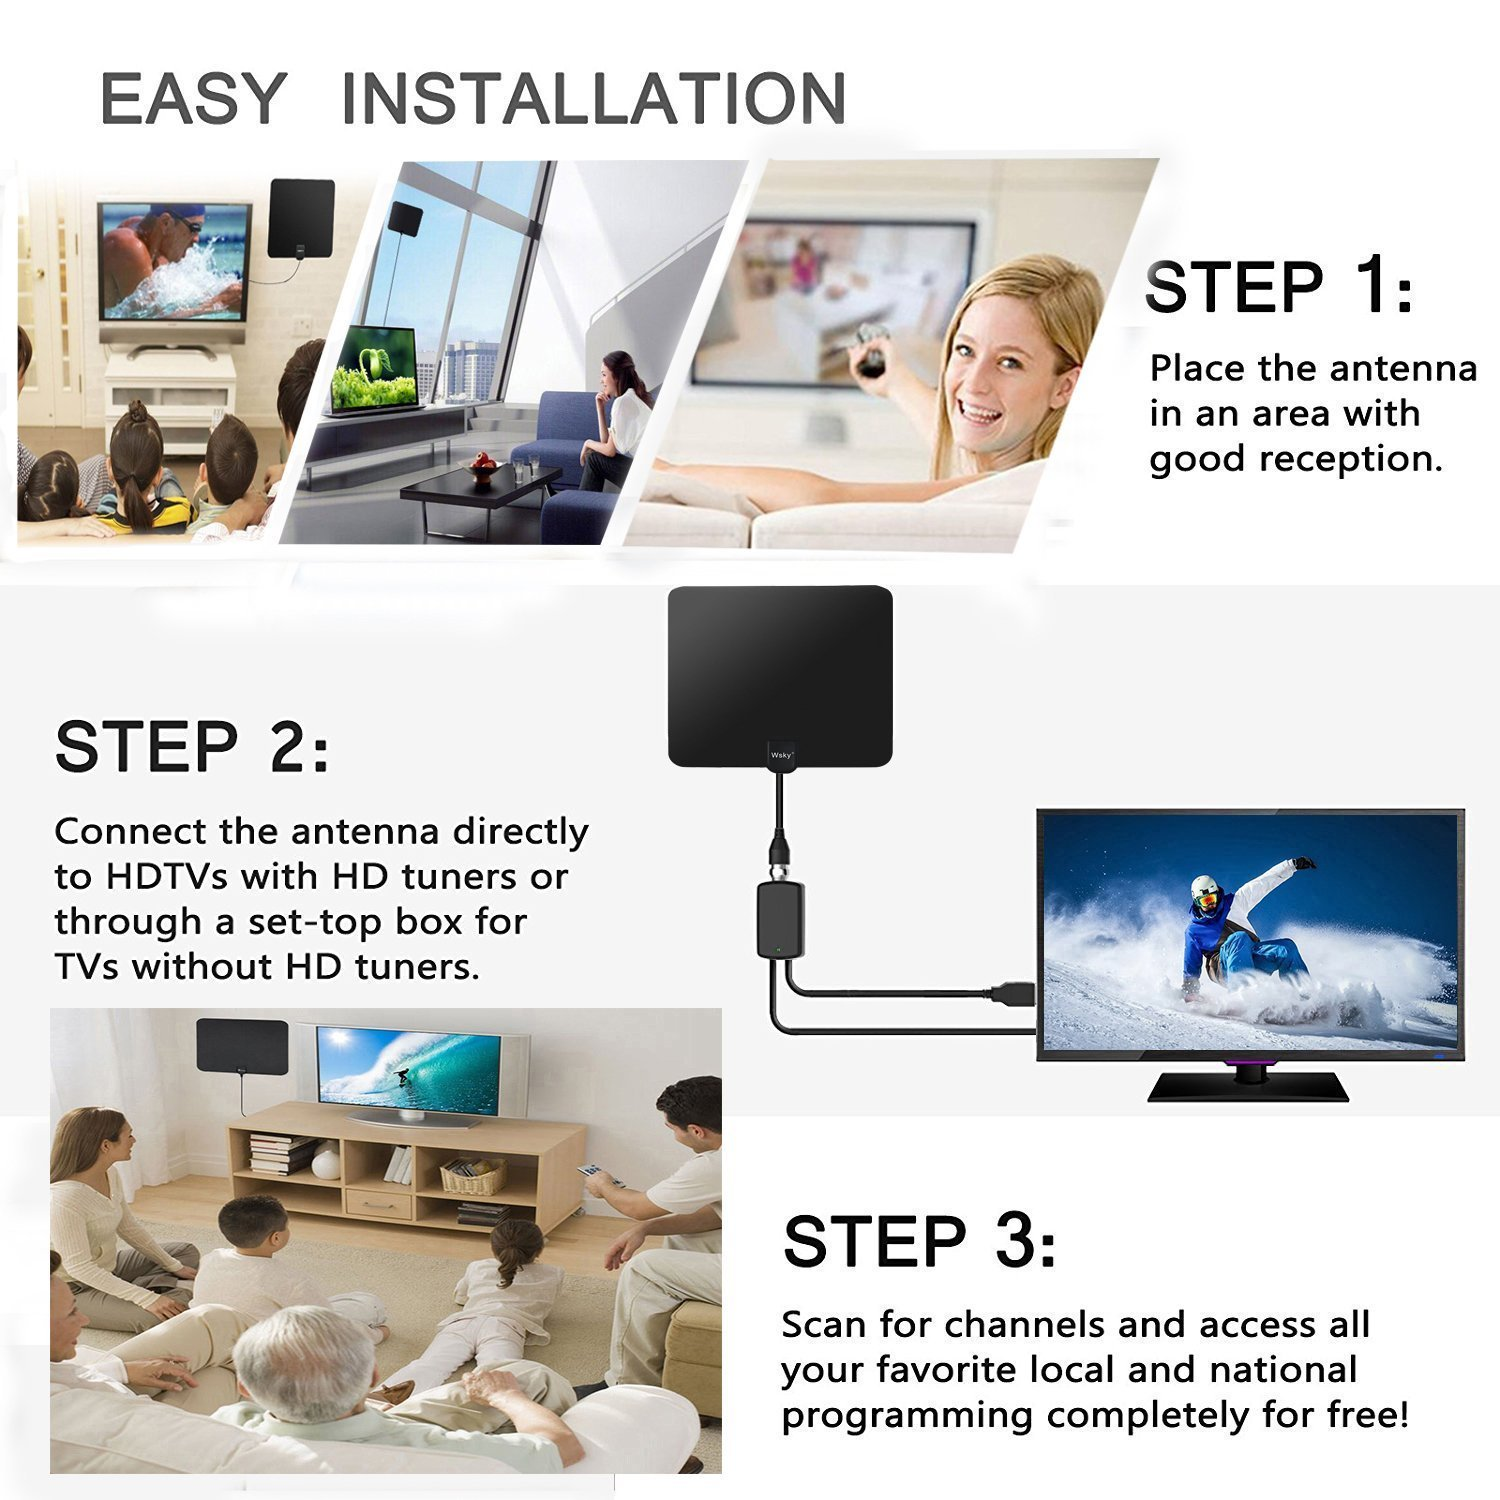 [NEWEST 2018] Wsky TV Antenna, 50-80 Long Miles Amplified HD Digital TV Antenna – Support 4K 1080p & All Older TV's for Indoor with Powerful HDTV Amplifier Signal Booster - Long Coax Cable by Wsky (Image #4)